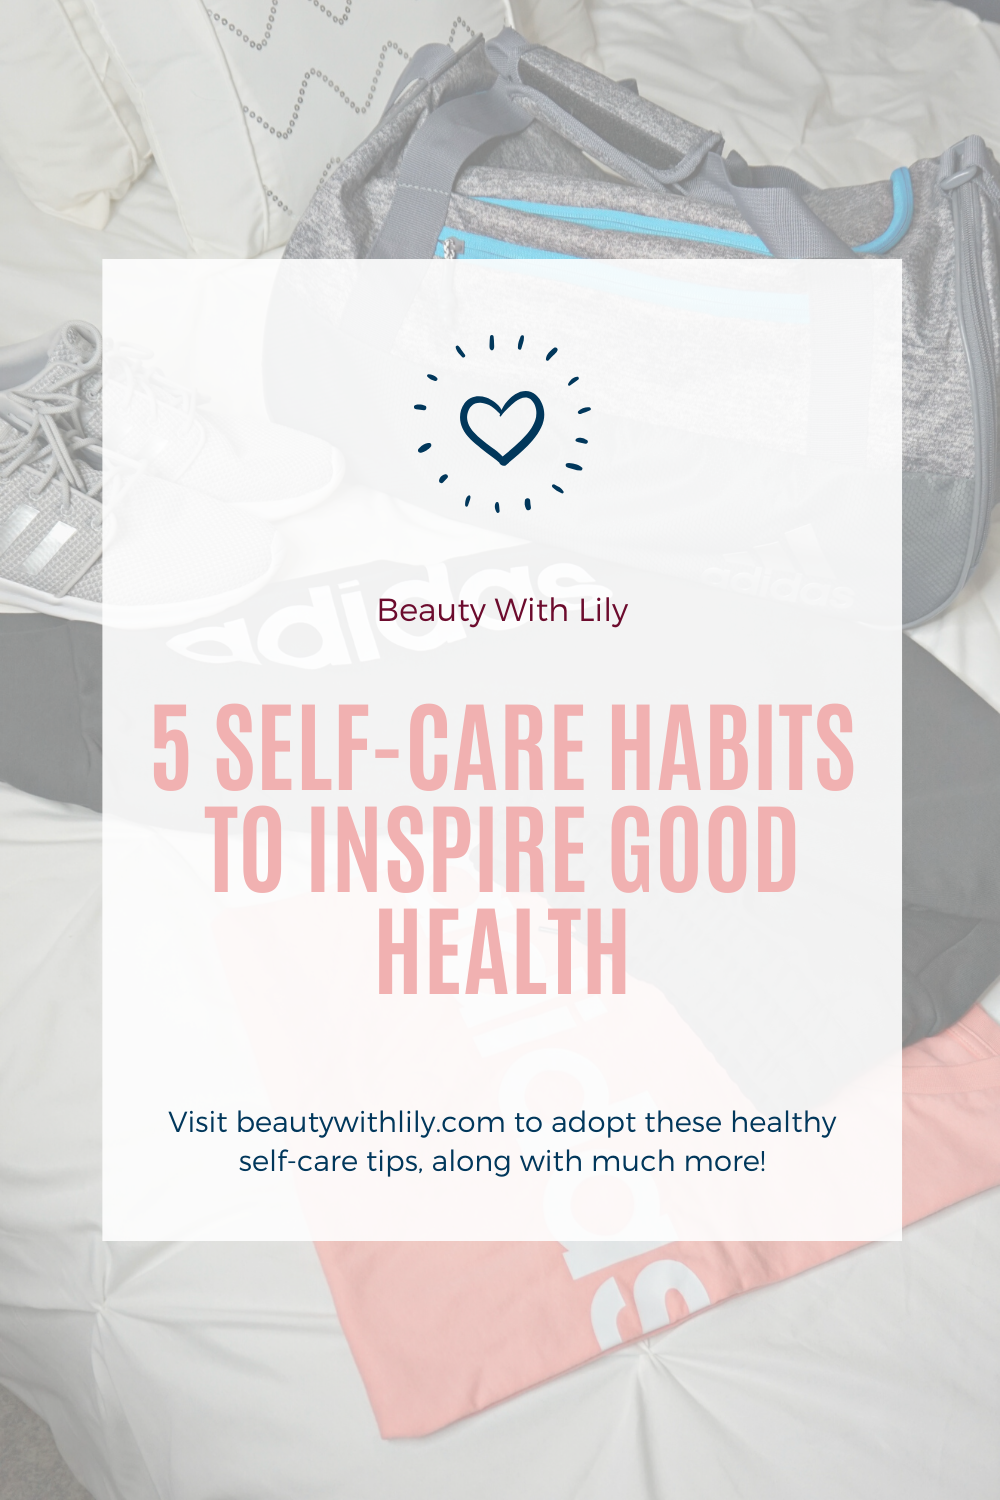 5 Self-Care Habits to Inspire Good Health // Self-Care Routine for a Healthy Lifestyle // Self-Care Tips & Tricks // Self-Care Day // Healthy Lifestyle Tips // How To Have a Positive Outlook // Tips to Inspire Happiness | Beauty With Lily #ad #adidas #selfcaretips #selfcare